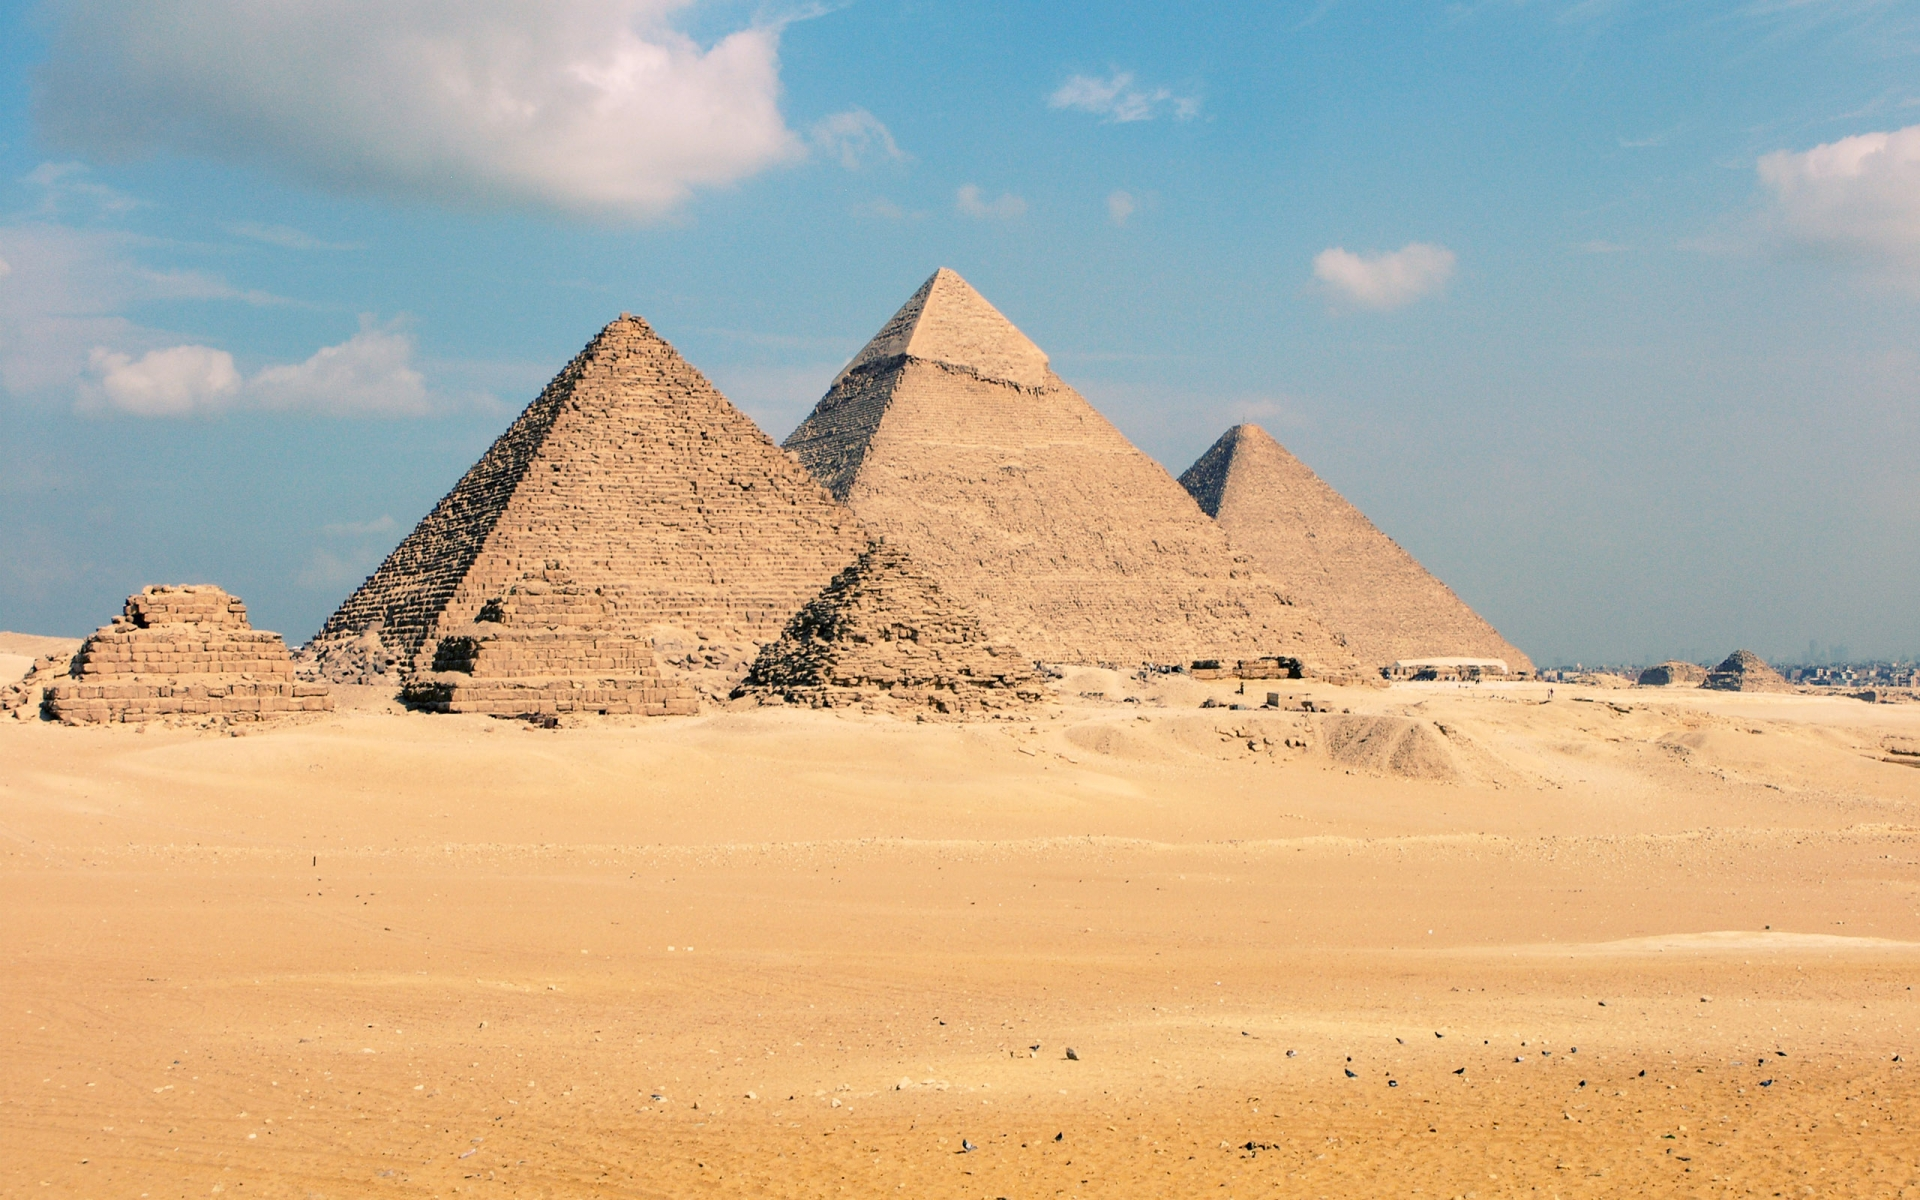 Pyramid Hd Wallpapers Movie Hd Wallpapers